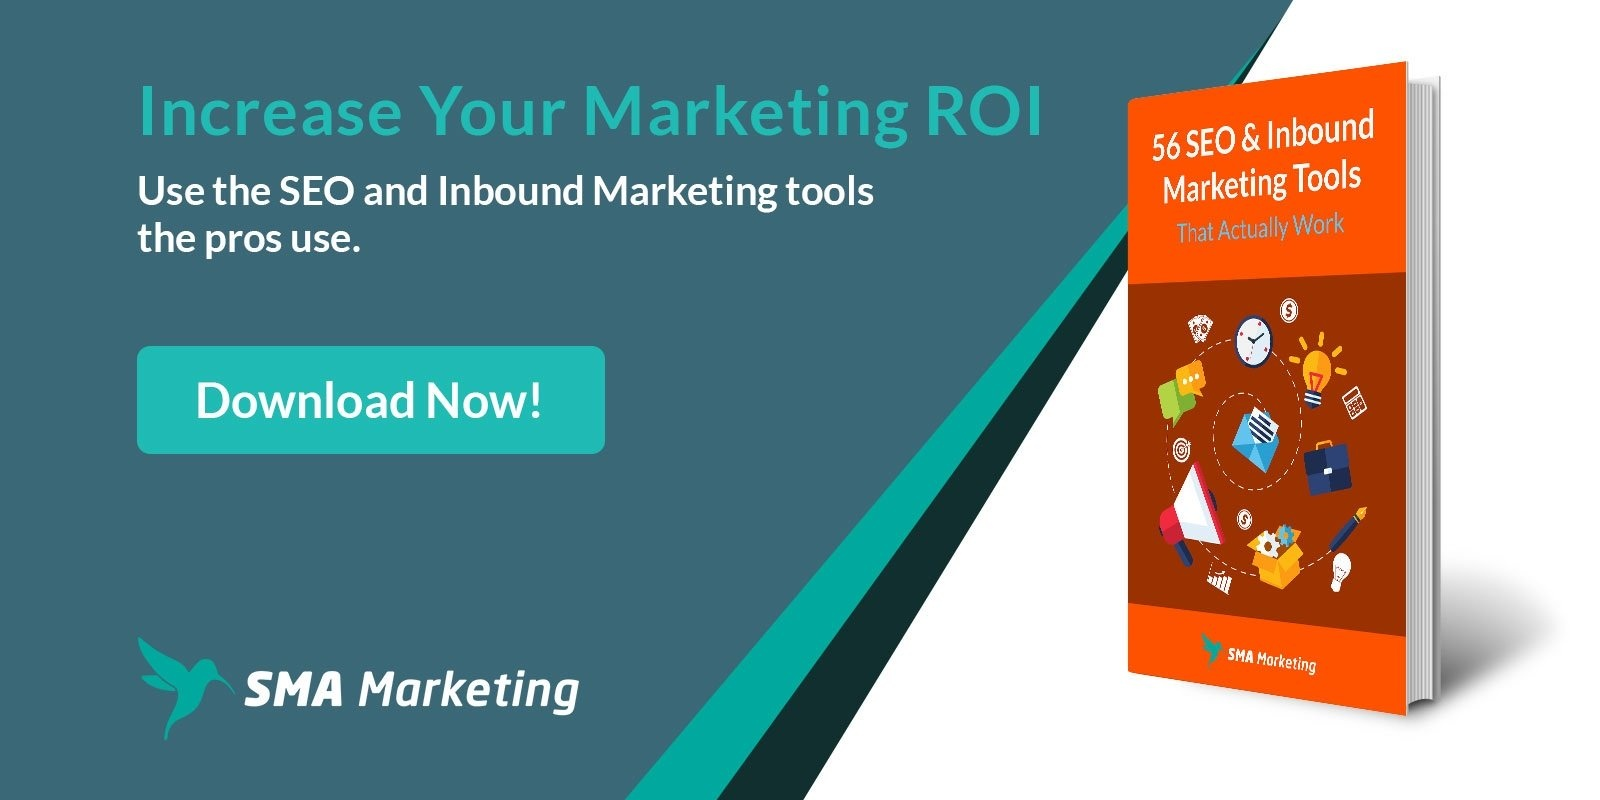 51 SEO & Inbound Marketing Tools